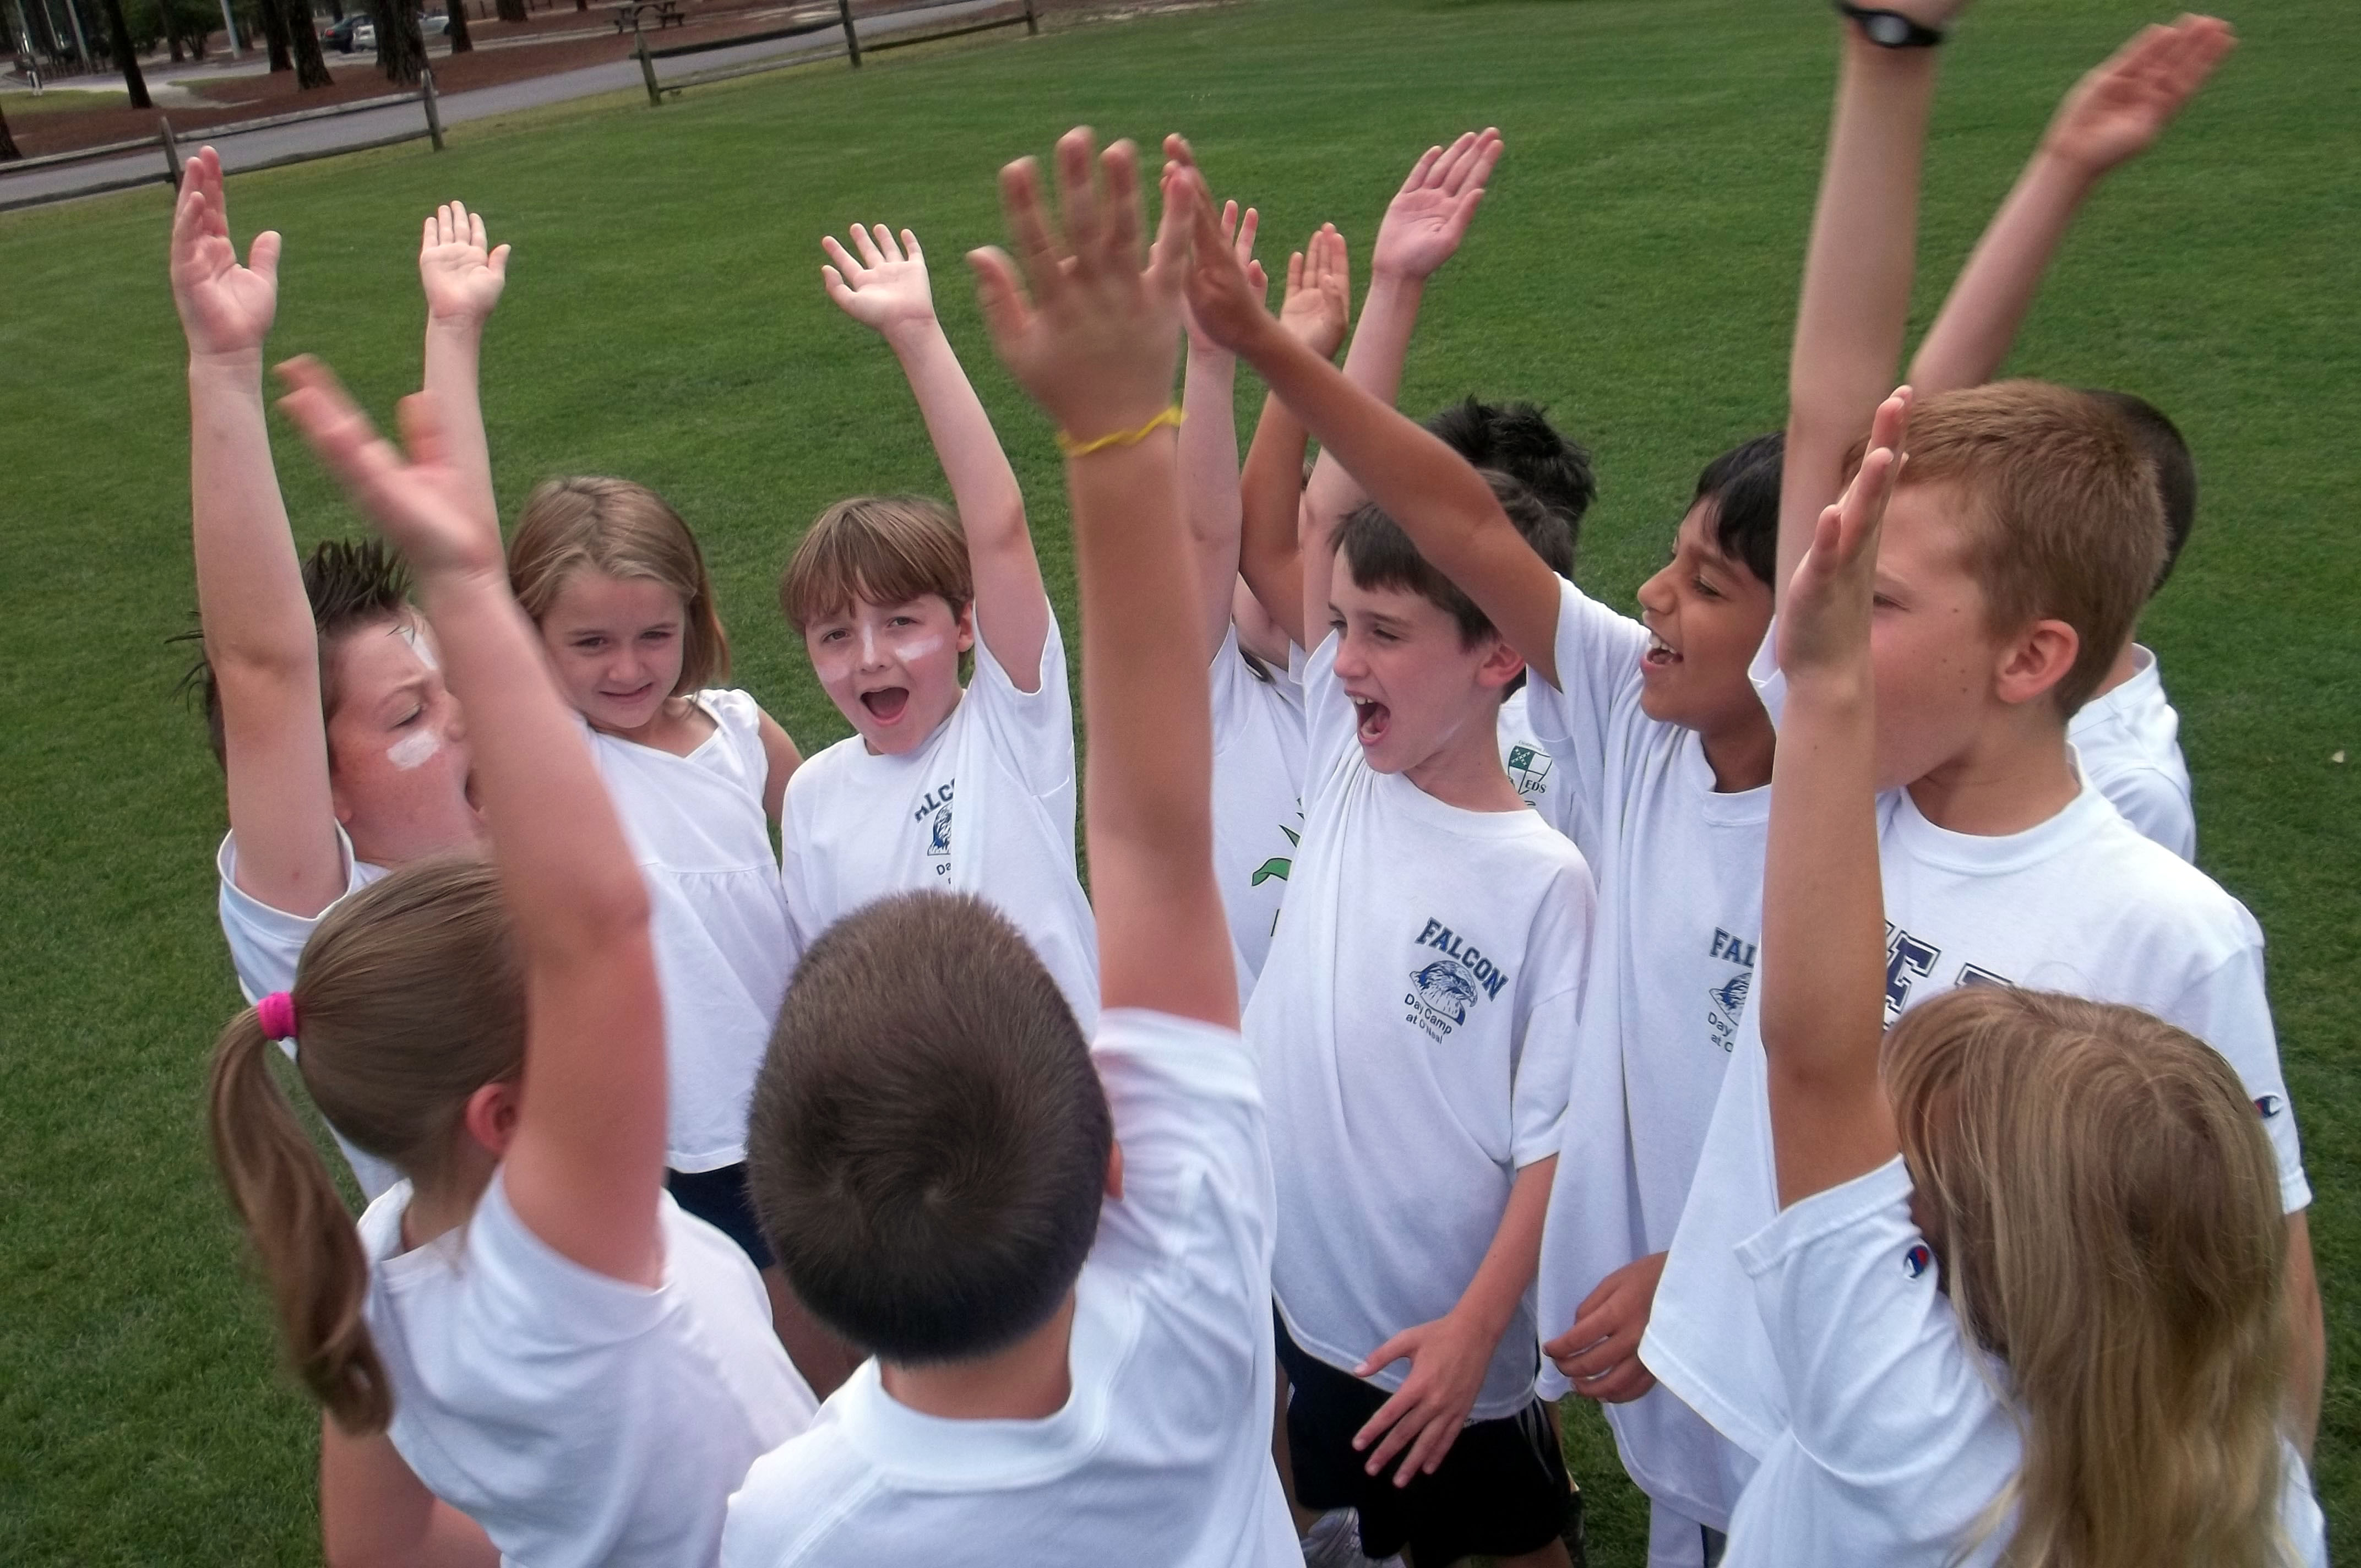 Field day team members at a private school rally.